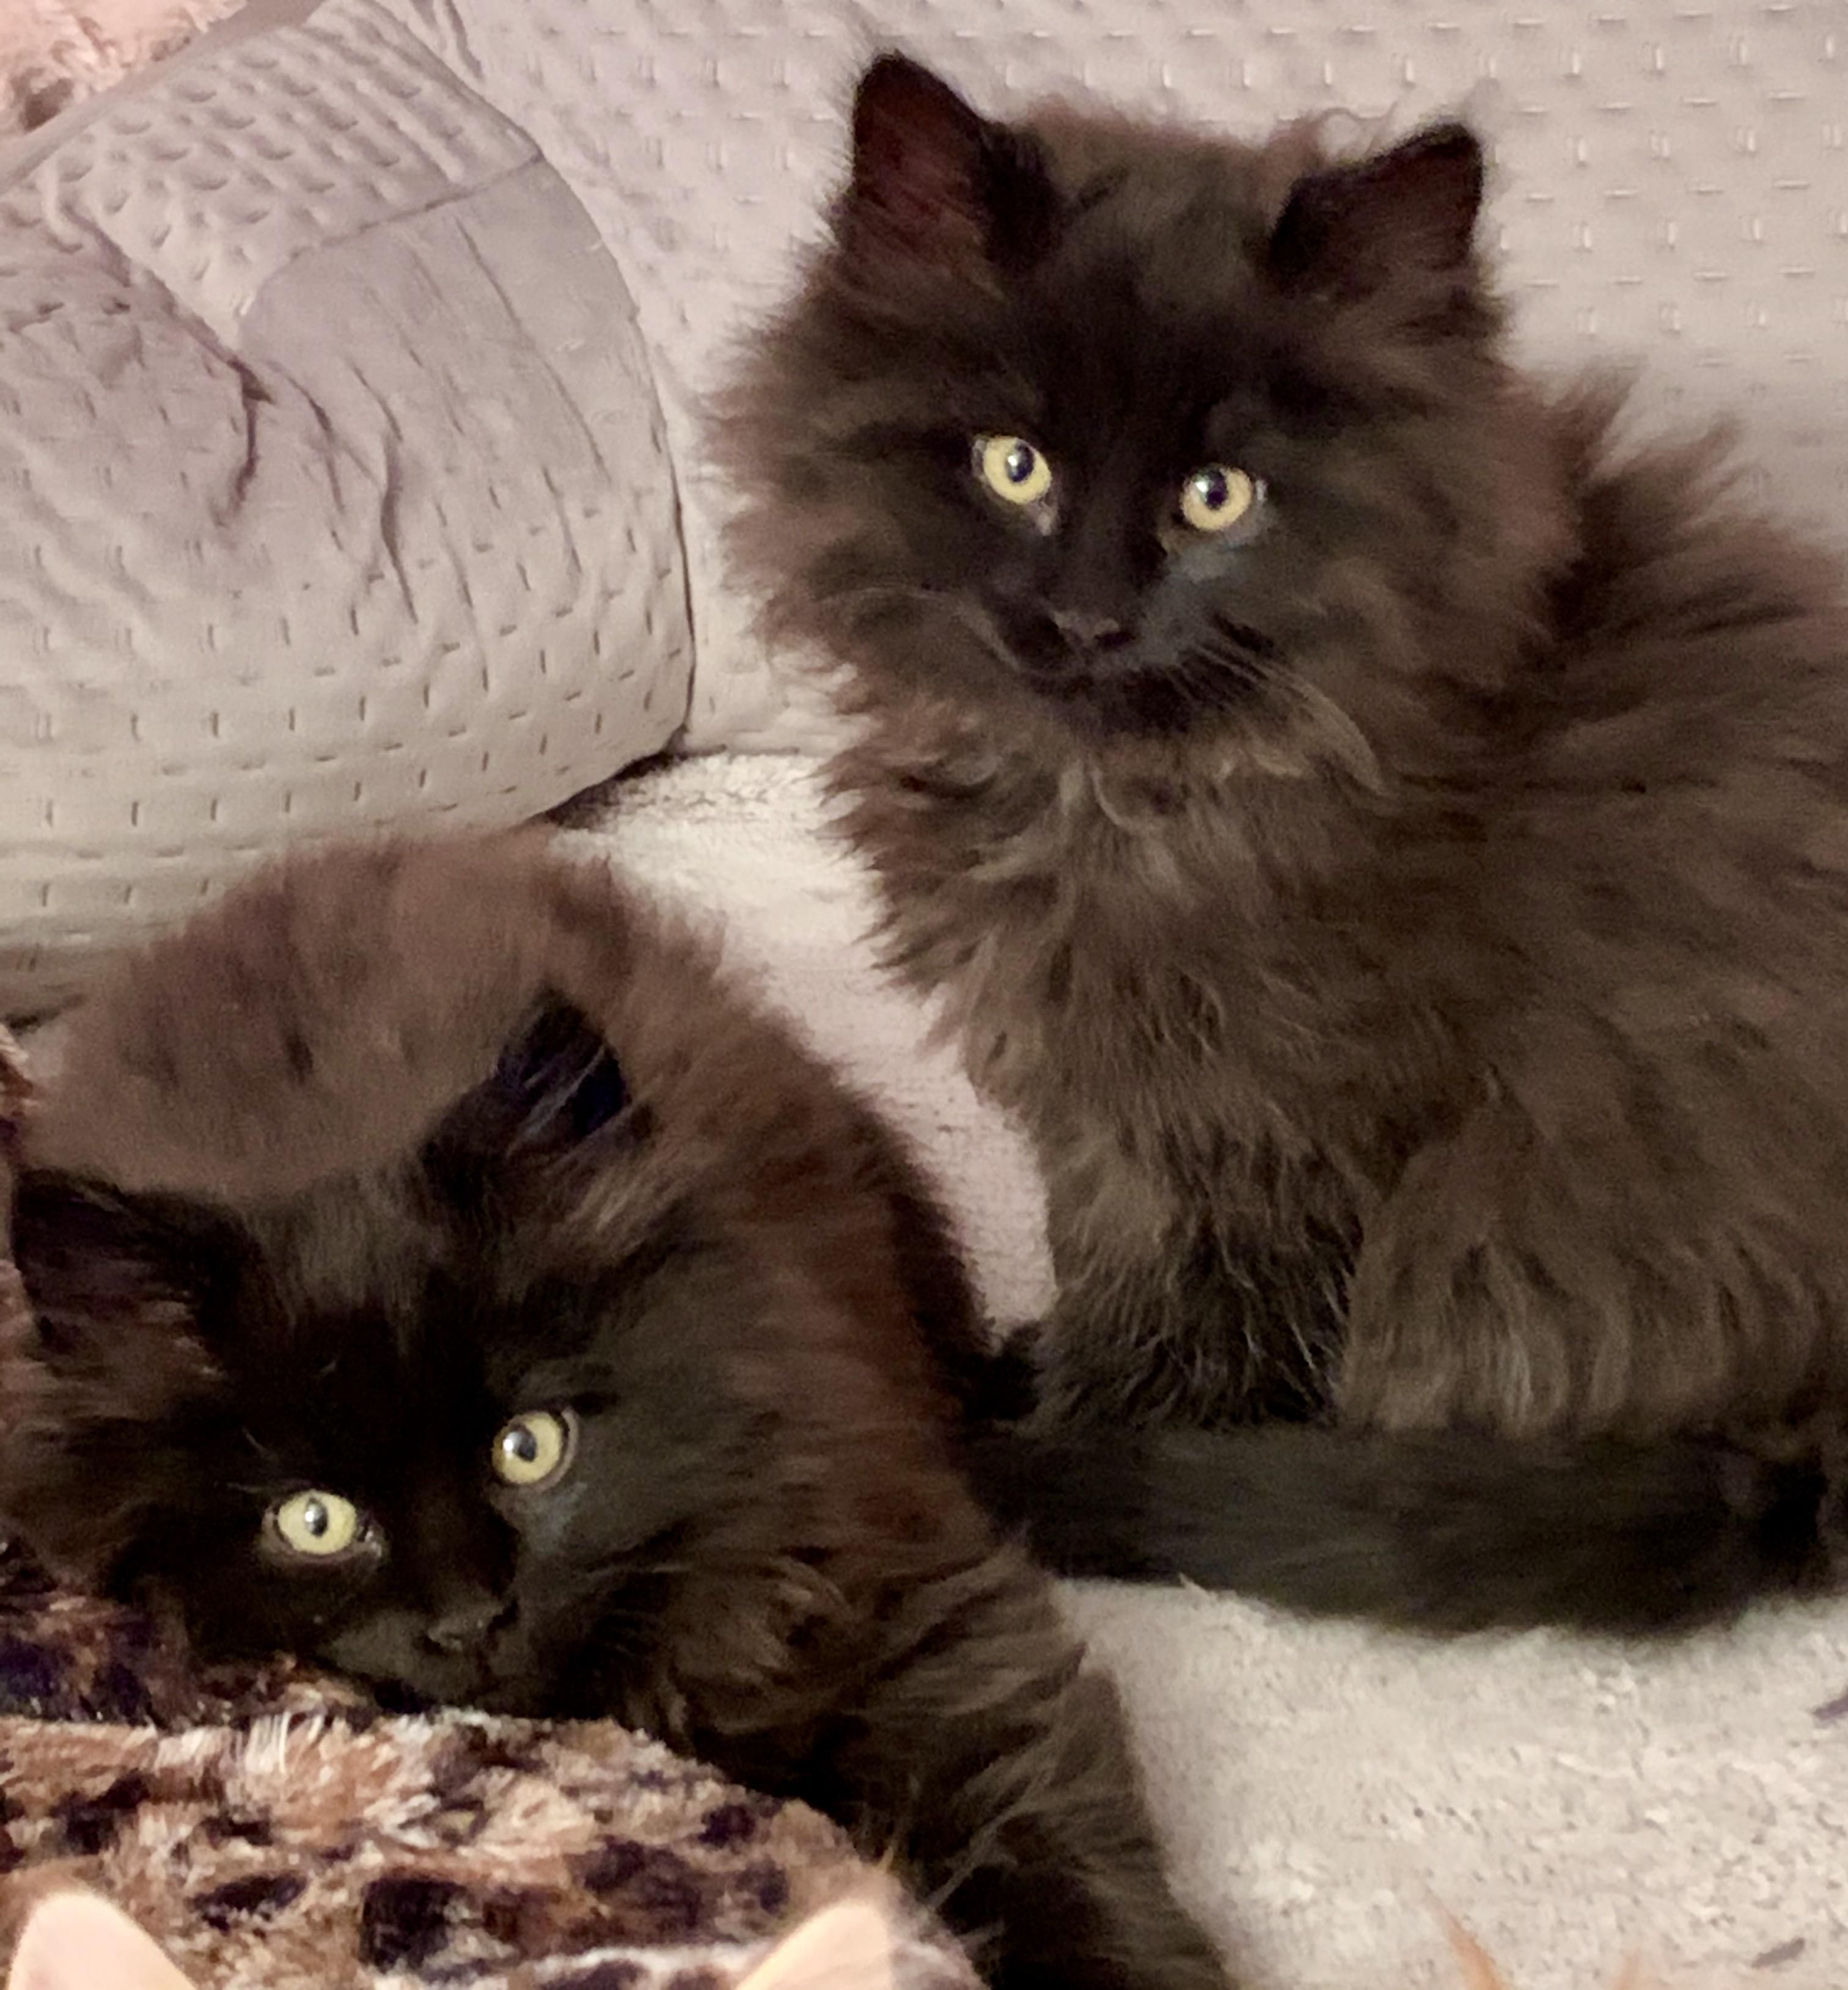 12 Week Old Foster Baby Floofs They Re Almost 3 Pounds Each But I Think Half Of That Is Floof Cute Baby Animals Cute Cats Cute Cats And Kittens